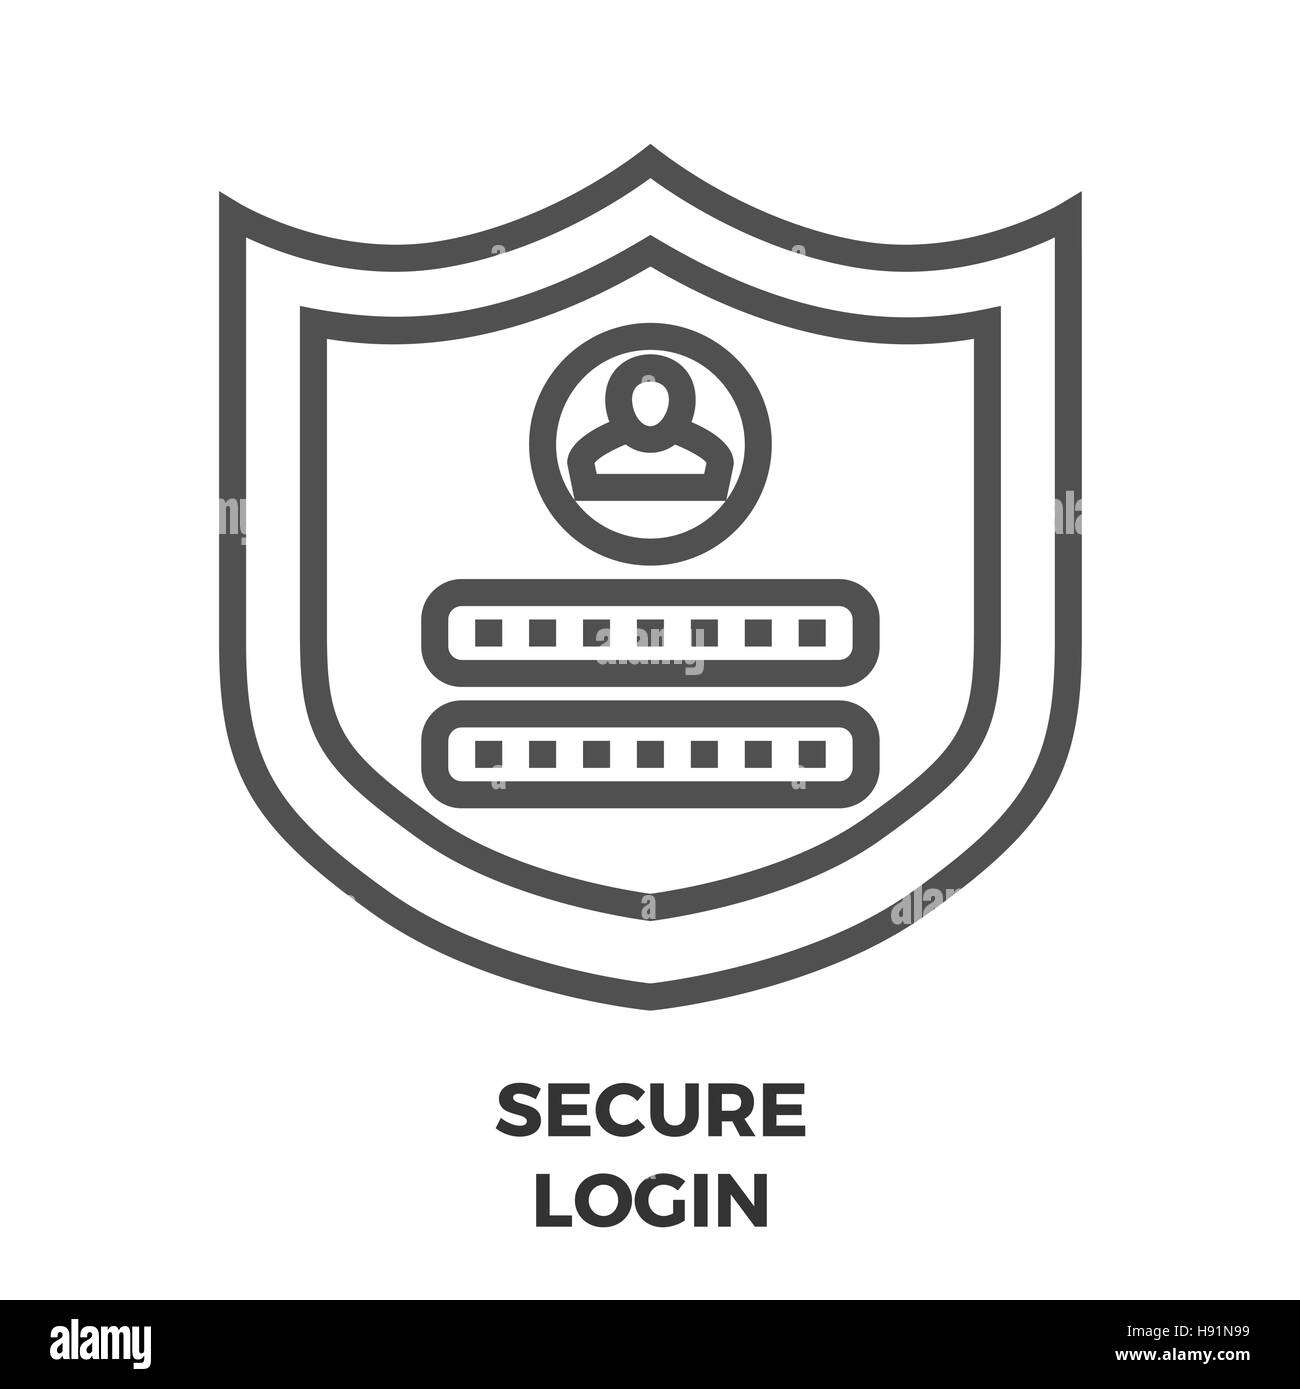 Secure Login Thin Line Vector Icon Isolated on the White Background. - Stock Vector